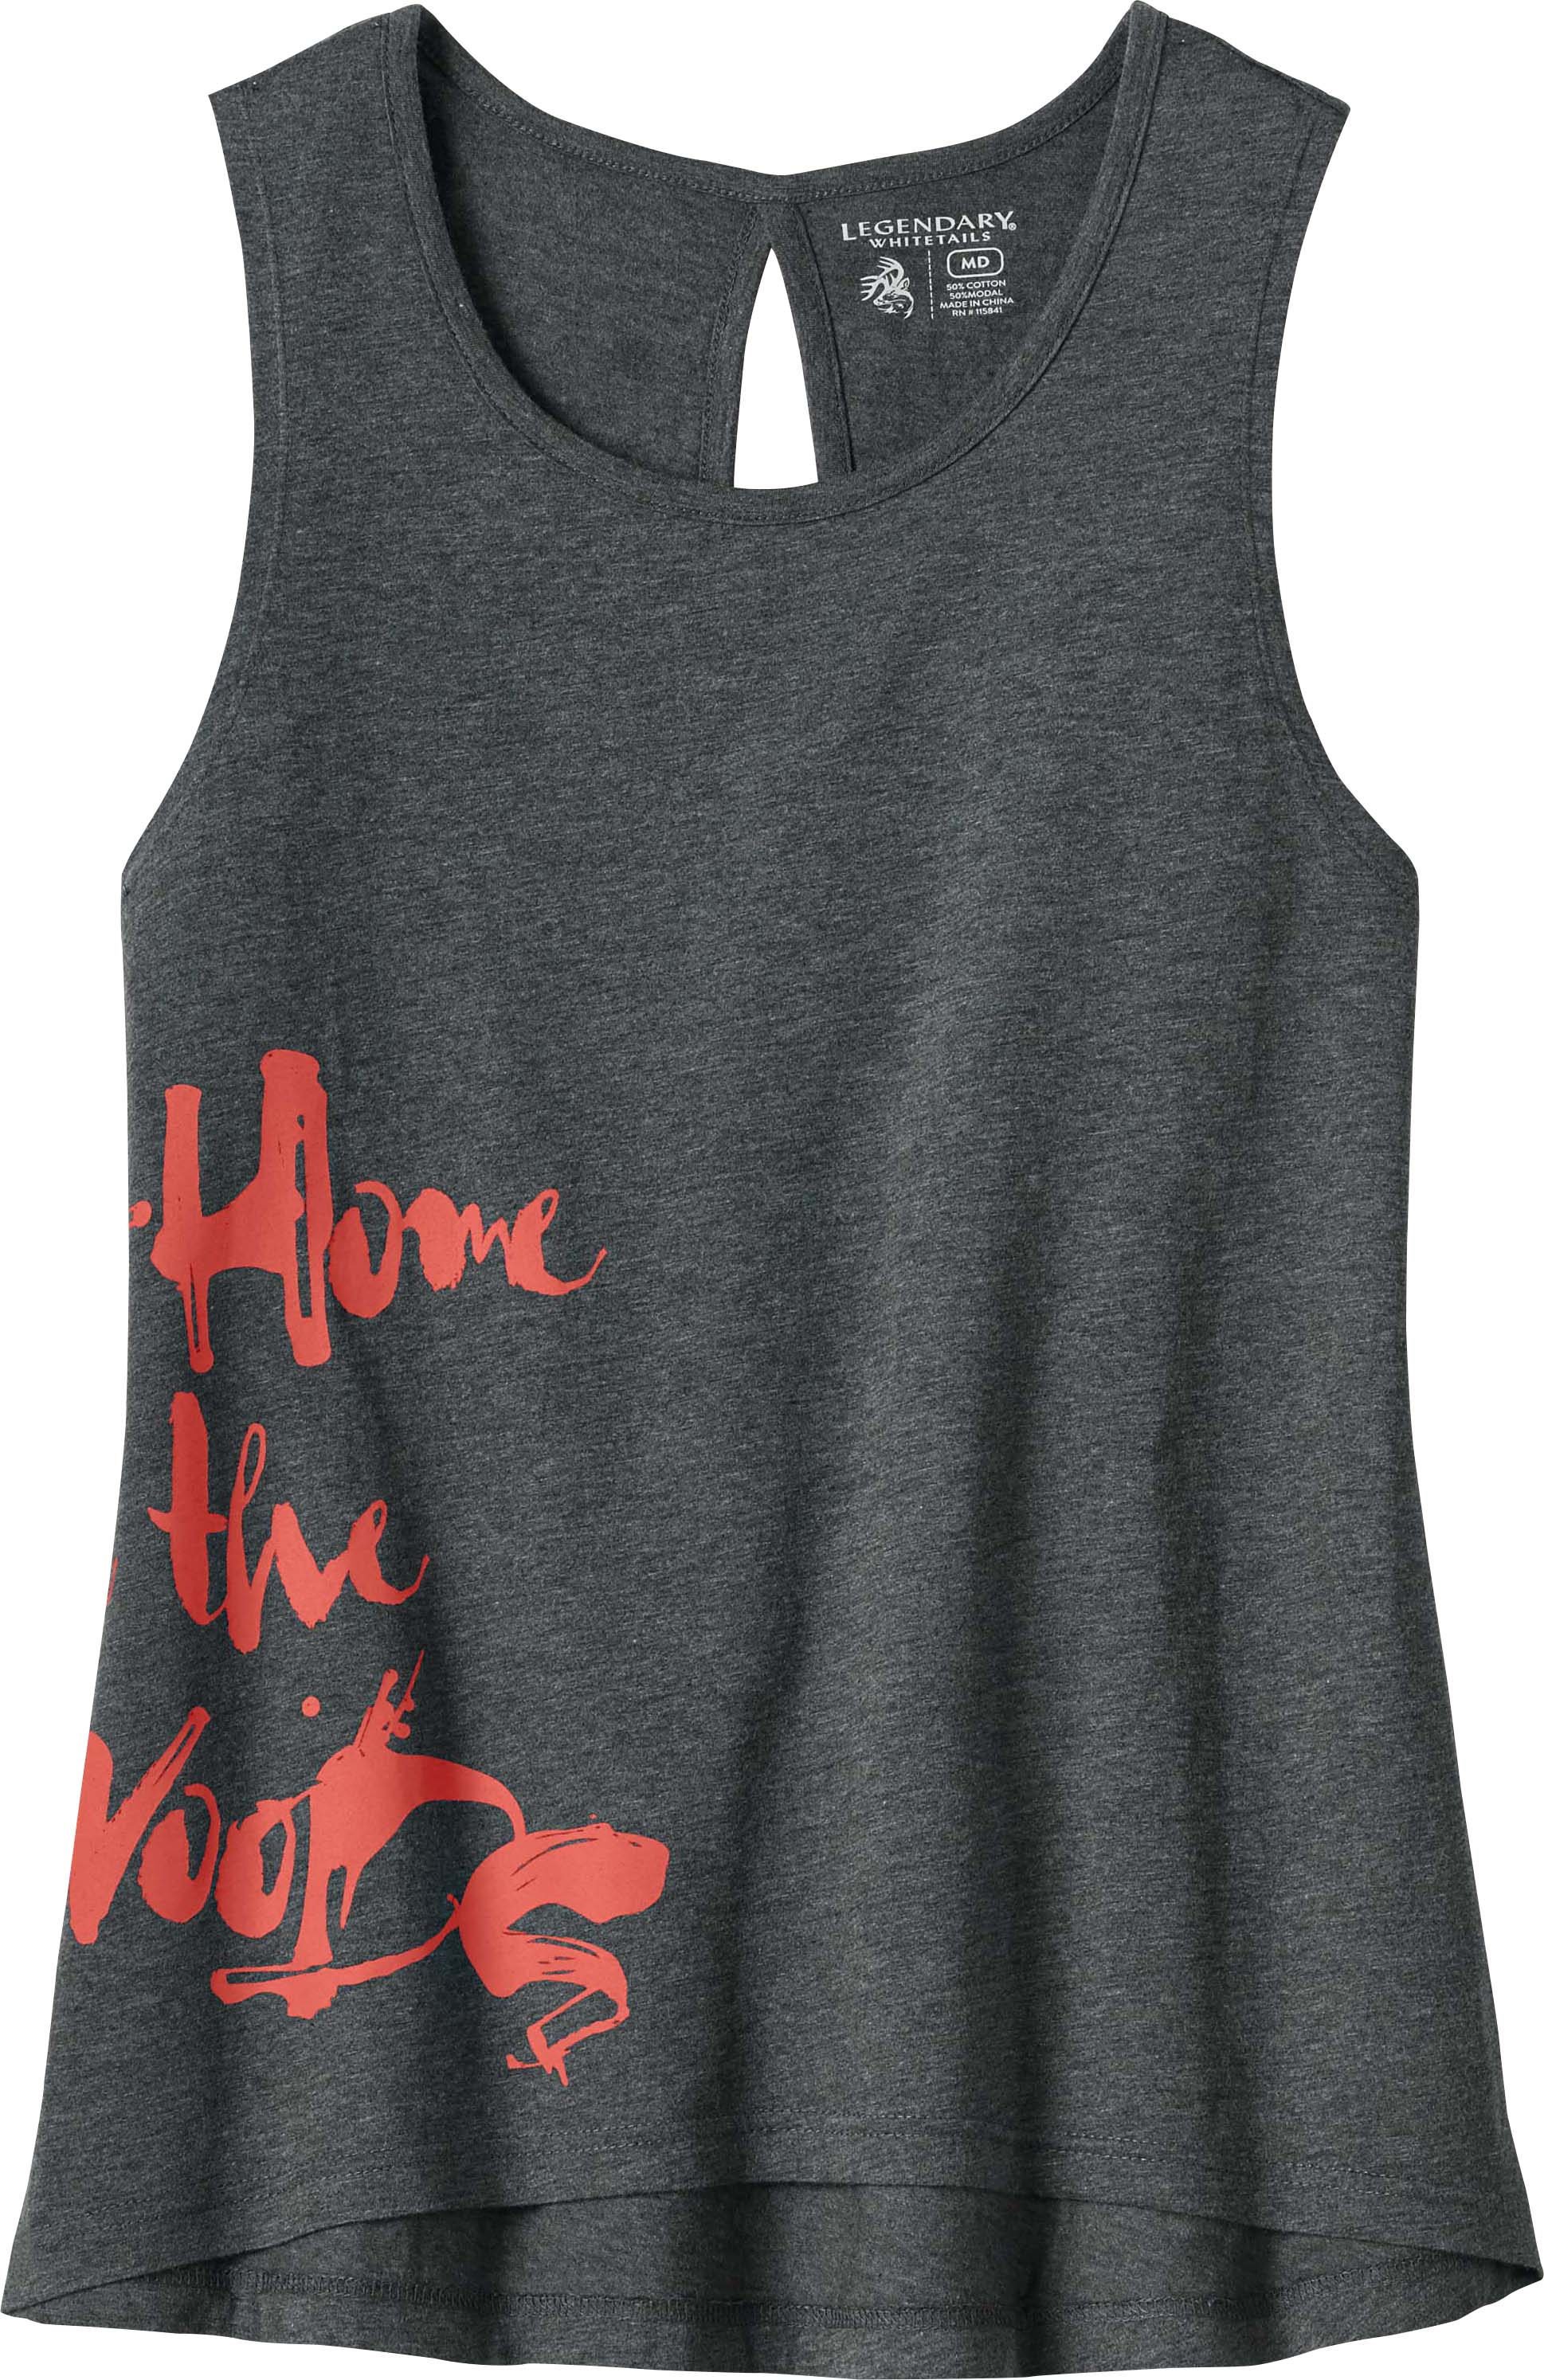 e784dce69 Ladies In The Woods Sleeveless Tee | Legendary Whitetails